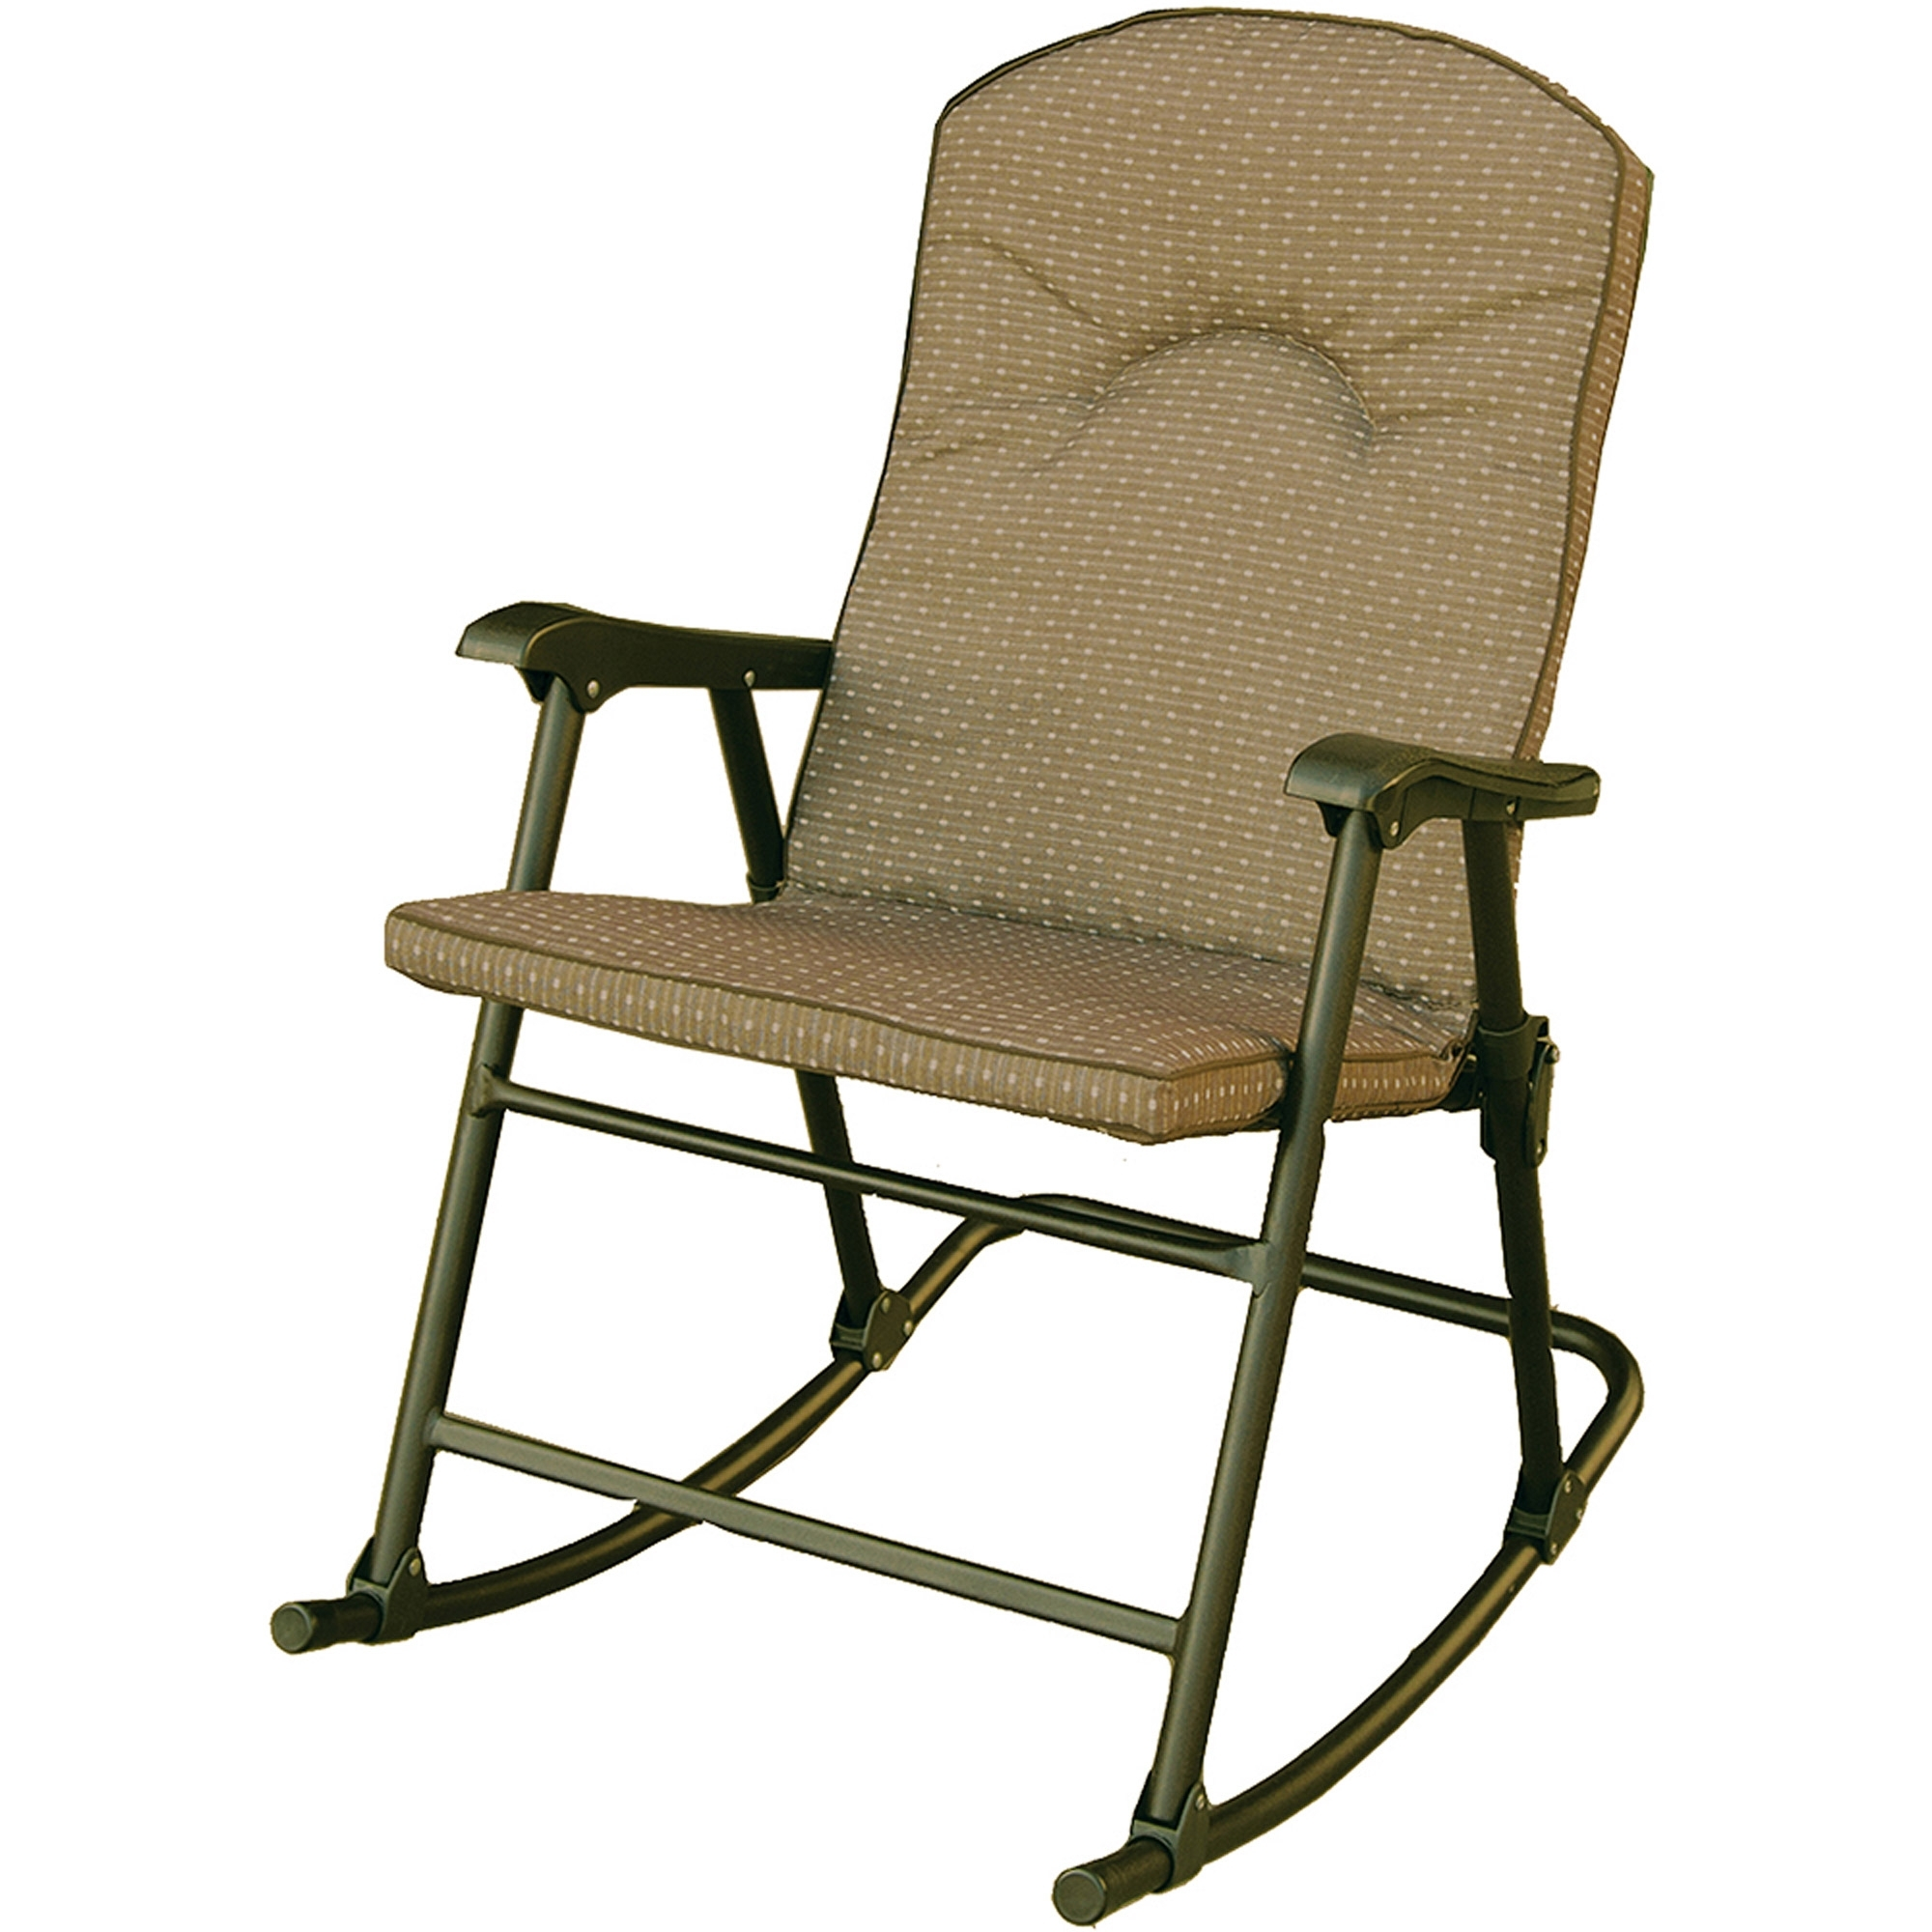 Prime Products Cambria Padded Rocker, Desert Taupe, 13 6805 Inside Most Up To Date Padded Patio Rocking Chairs (View 14 of 15)